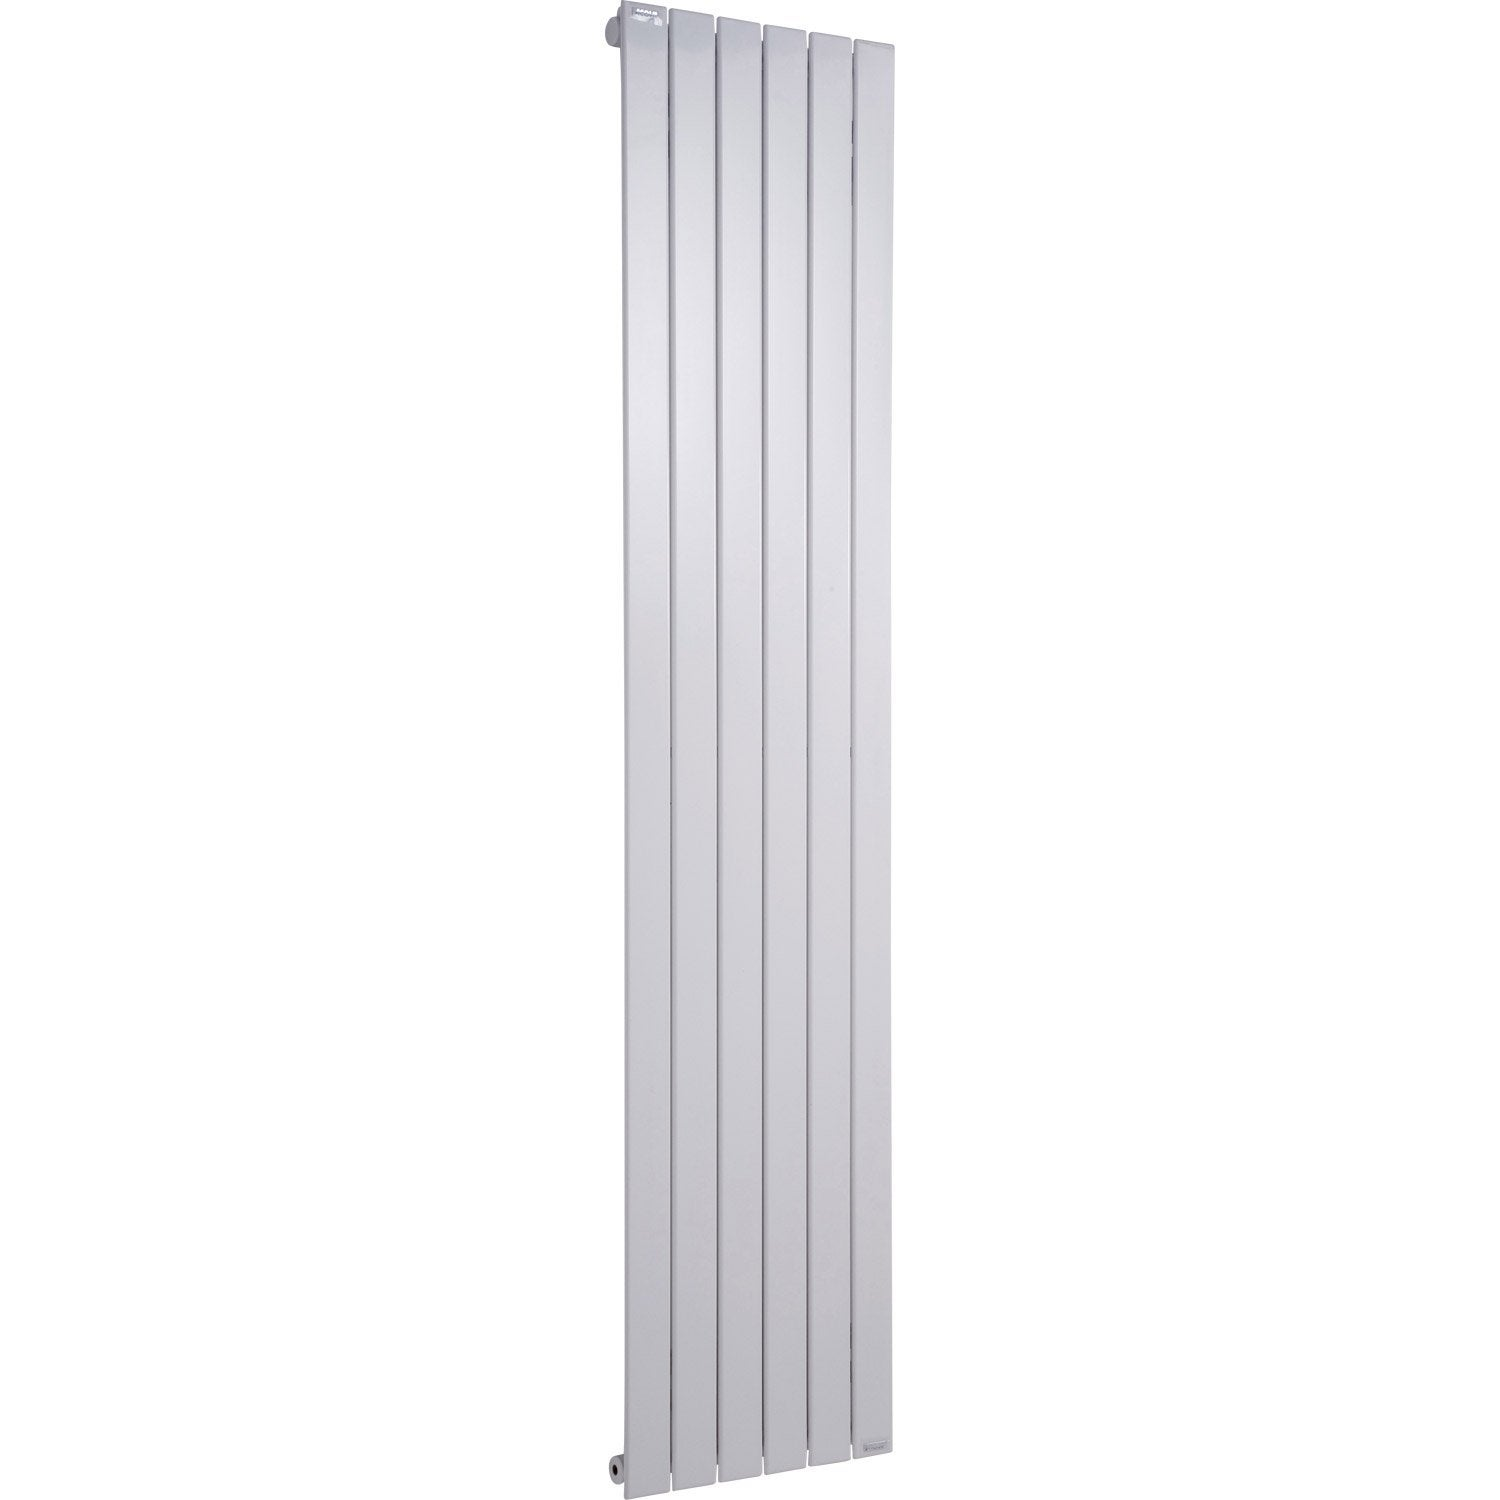 radiateur chauffage central acier acova lina blanc 930w leroy merlin. Black Bedroom Furniture Sets. Home Design Ideas